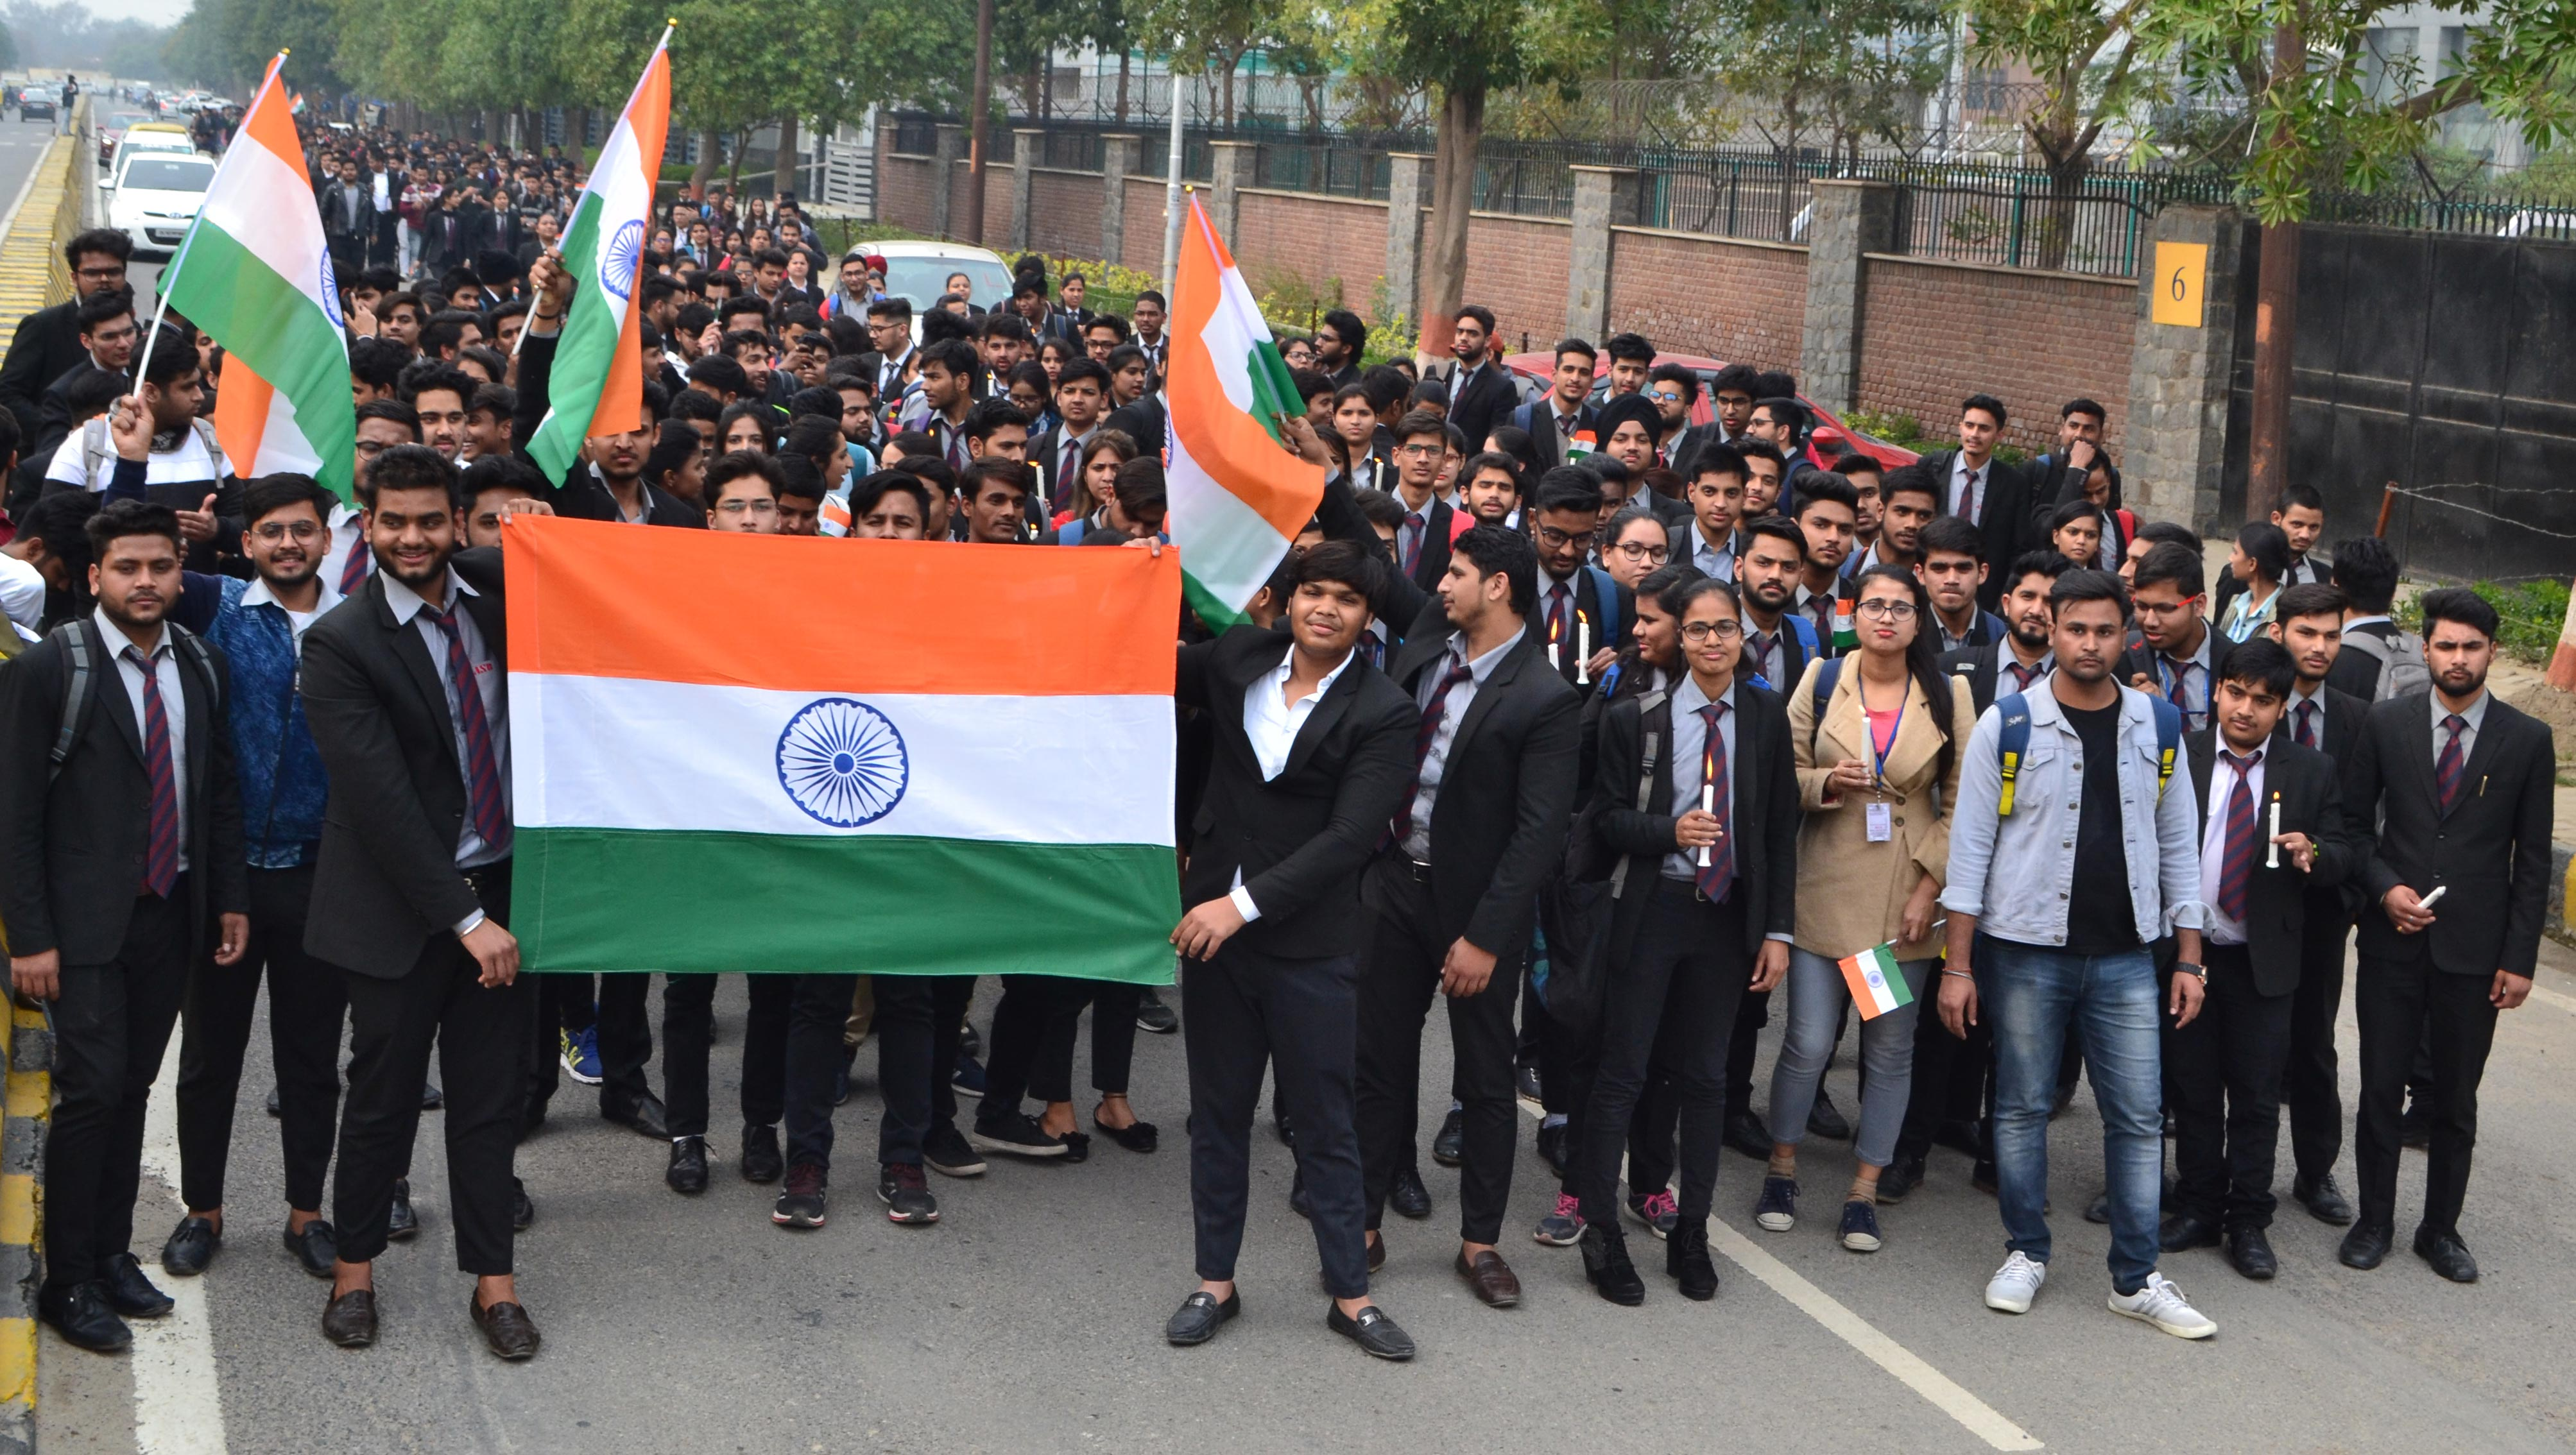 Asian Law College (ALC) pays emotional tribute to CRPF martyrs of Pulwama